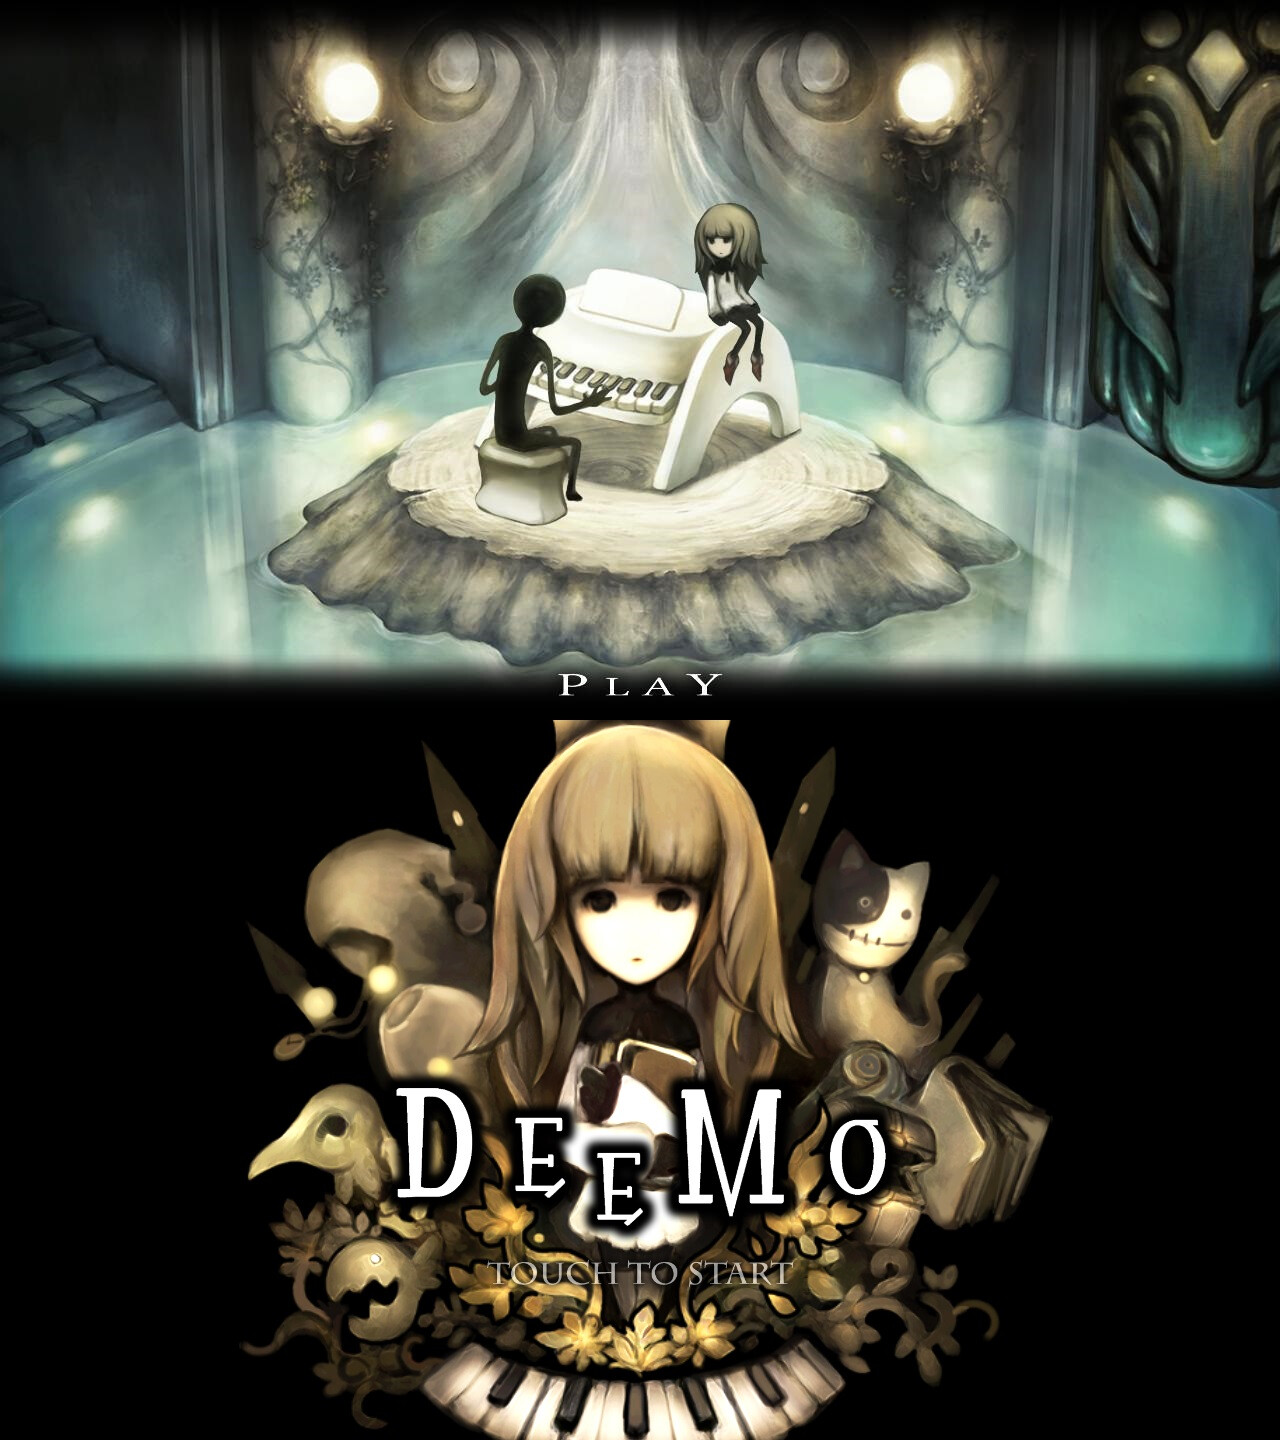 Deemo - Android, iOS - $1.99